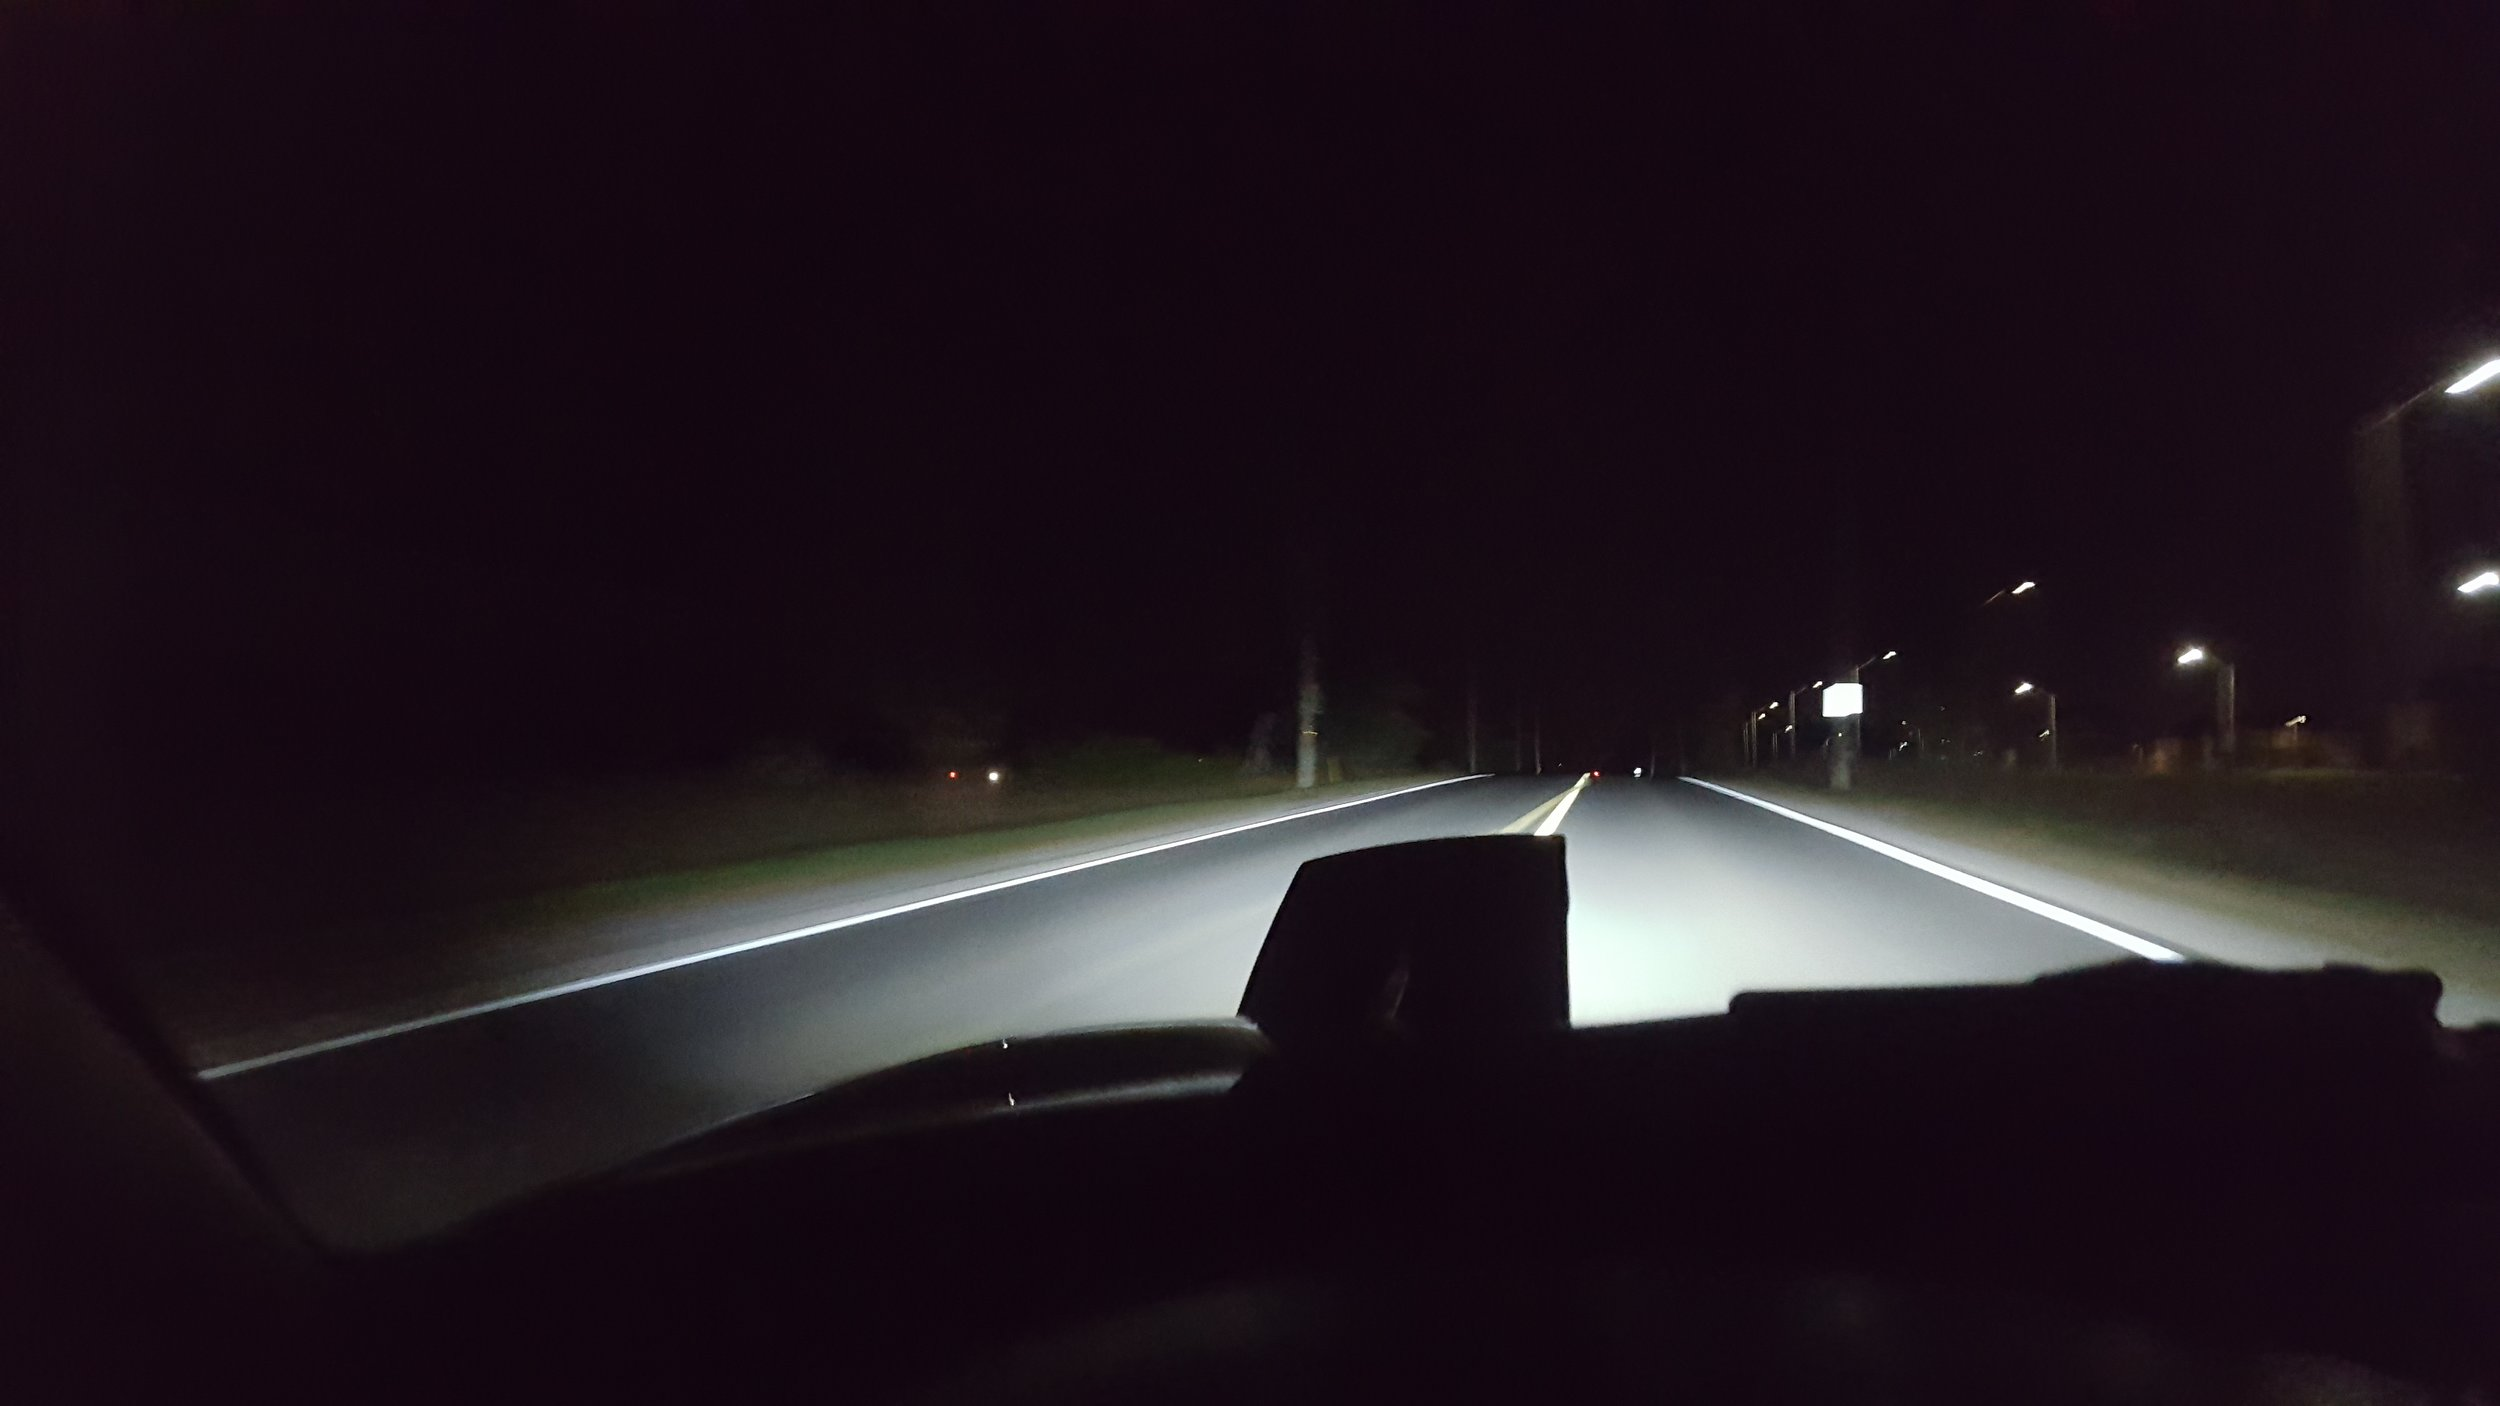 Sides of the road are better illuminated with the new LED bulbs.